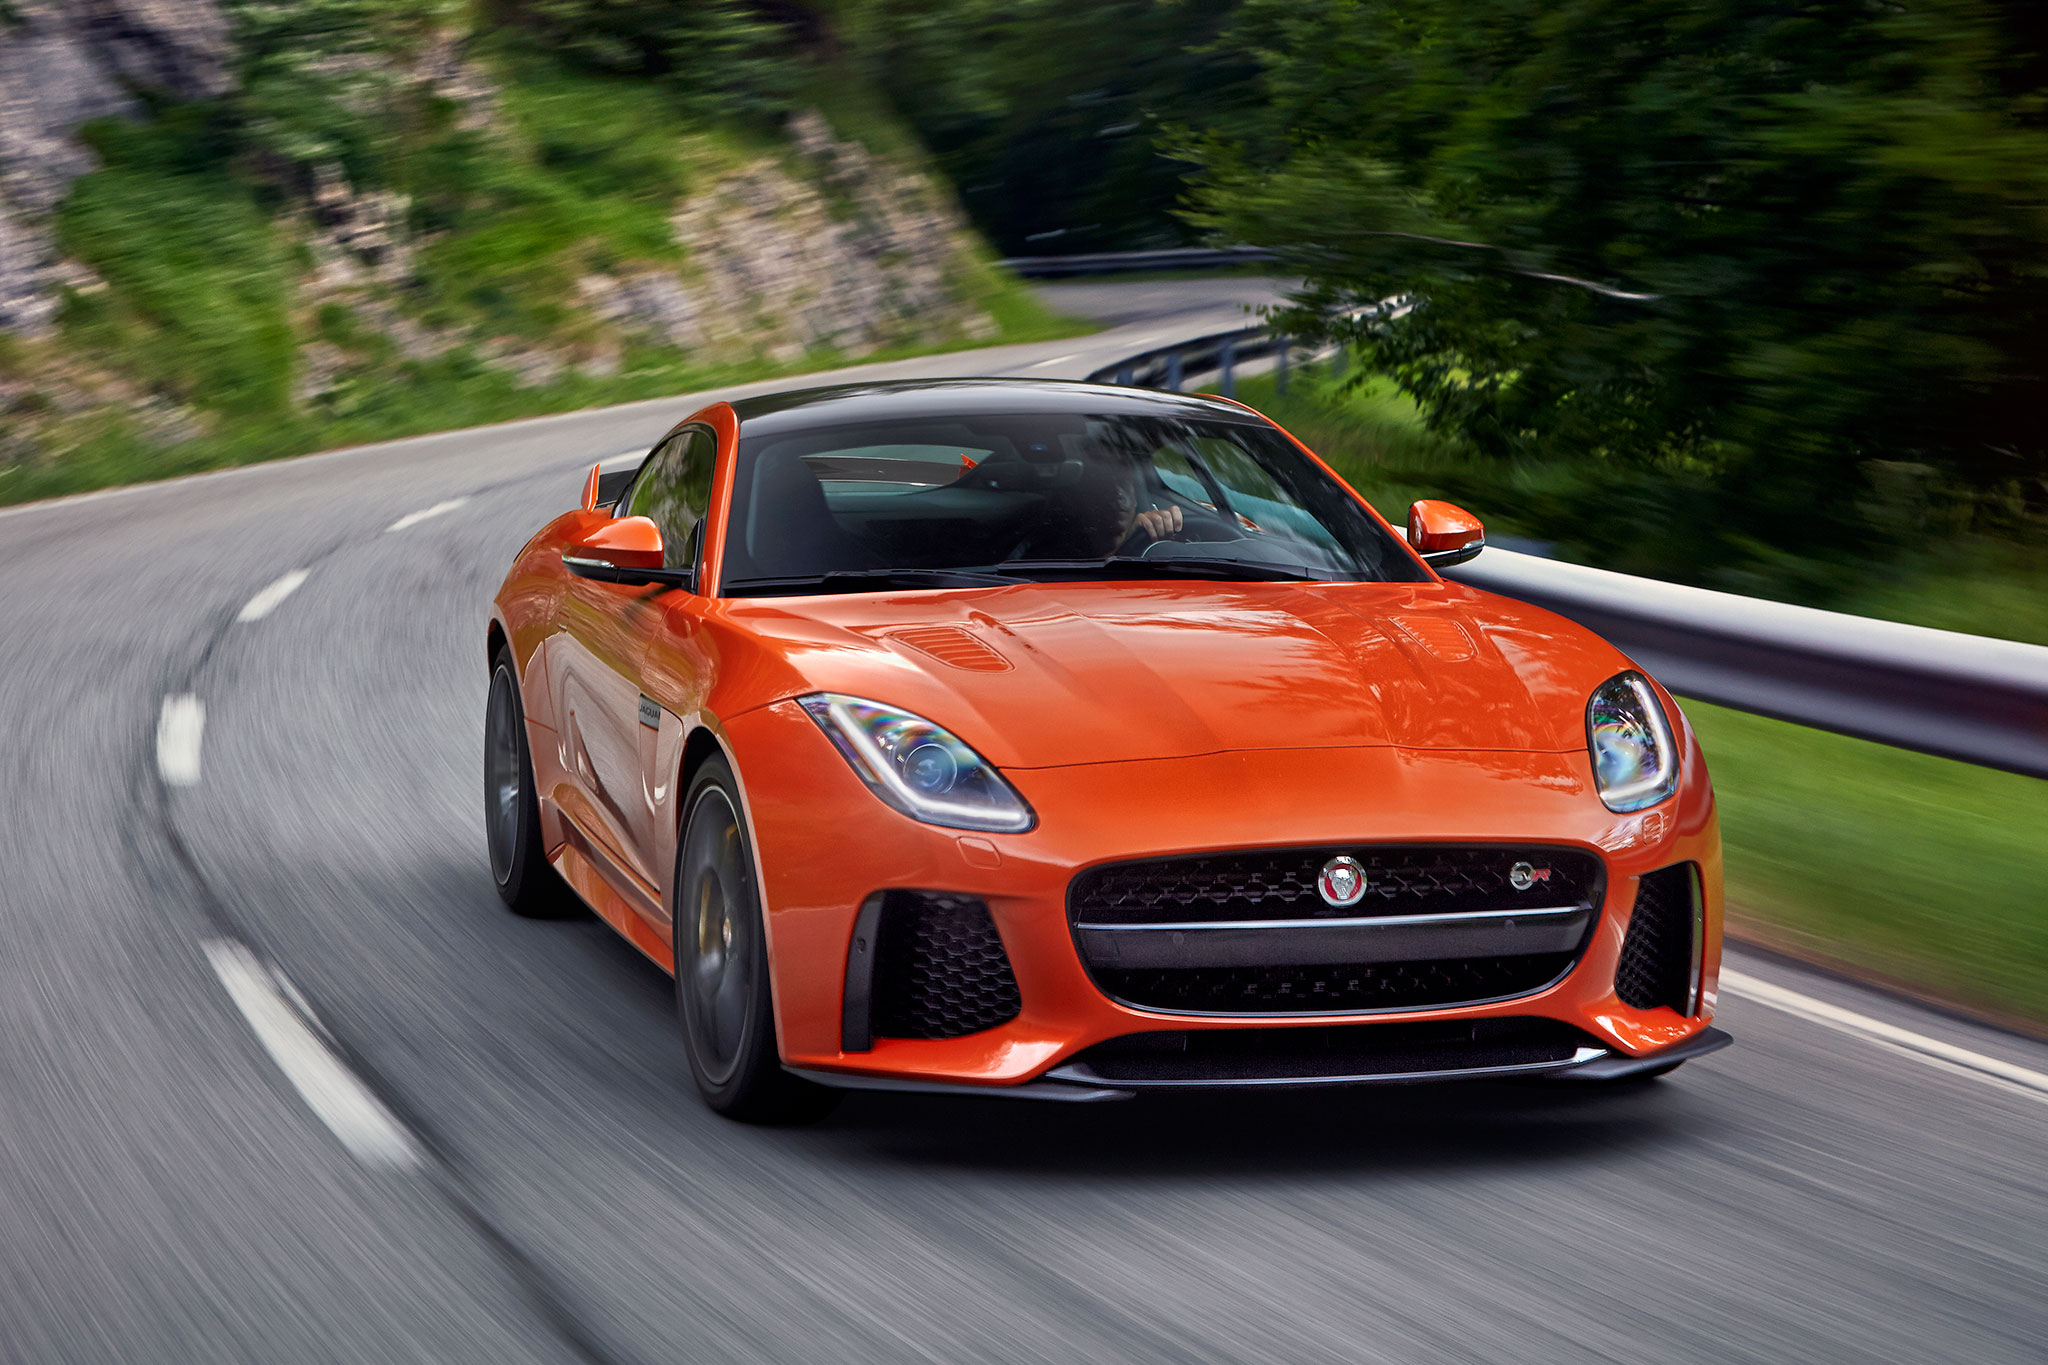 2017-jaguar-f-type-svr-front-three-quarter-in-motion-07